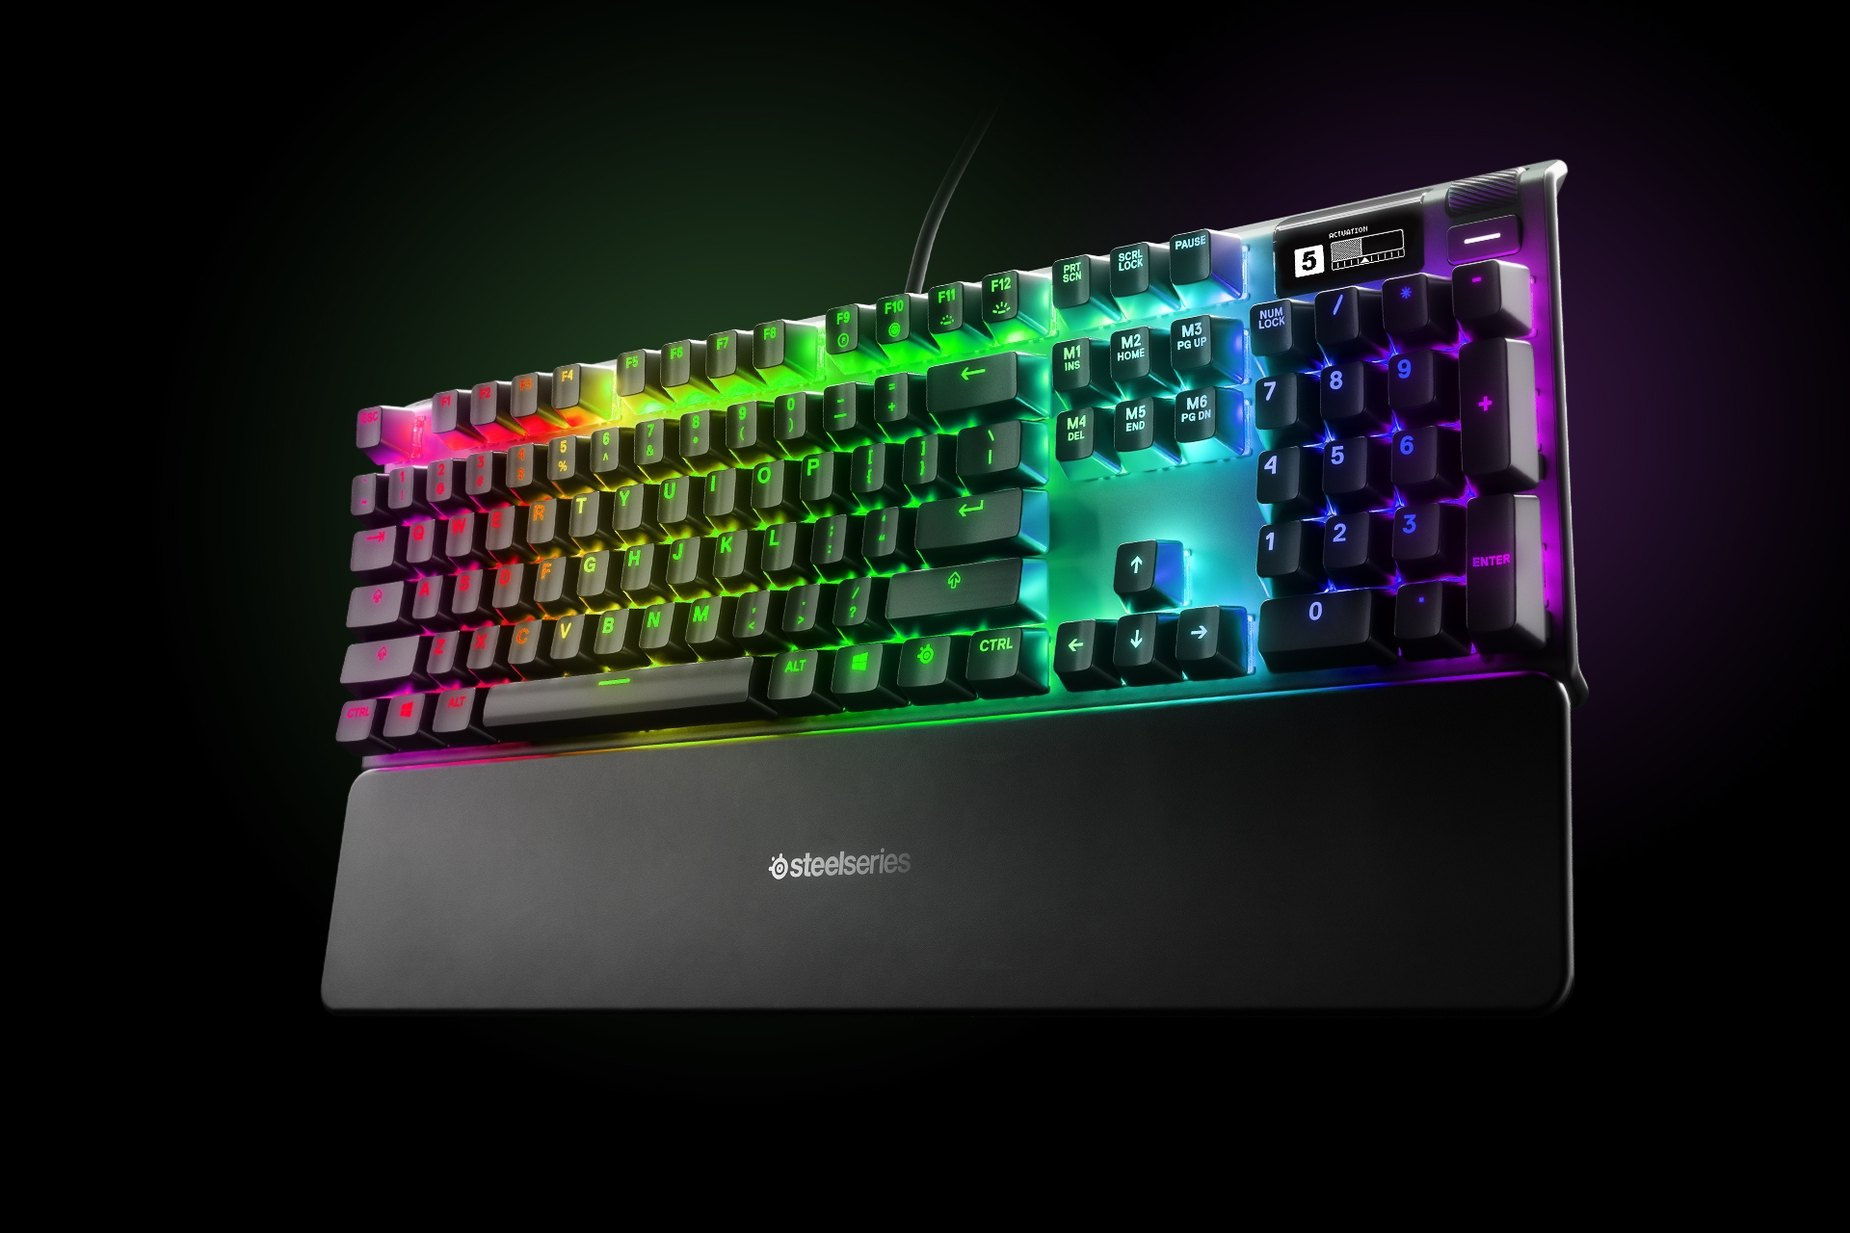 Korece - Apex Pro gaming keyboard with the illumination lit up on dark background, also shows the OLED screen and controls used to change settings, switch actuation, and adjust audio